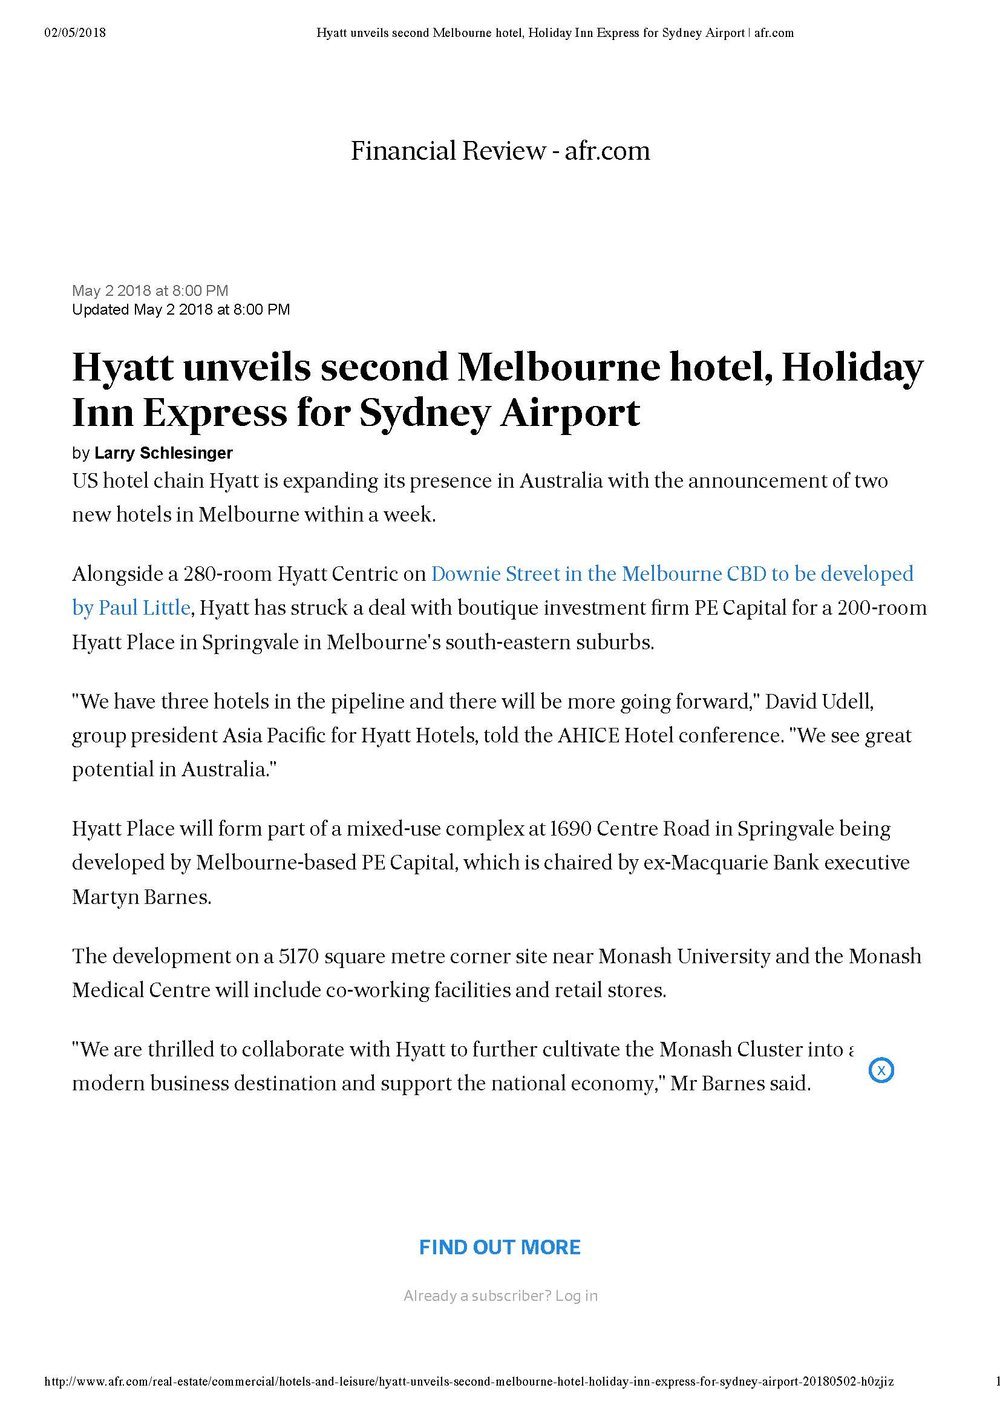 Hyatt unveils second Melbourne hotel, Holiday Inn Express for Sydney Airport _ afr.com-1_Page_1.jpg